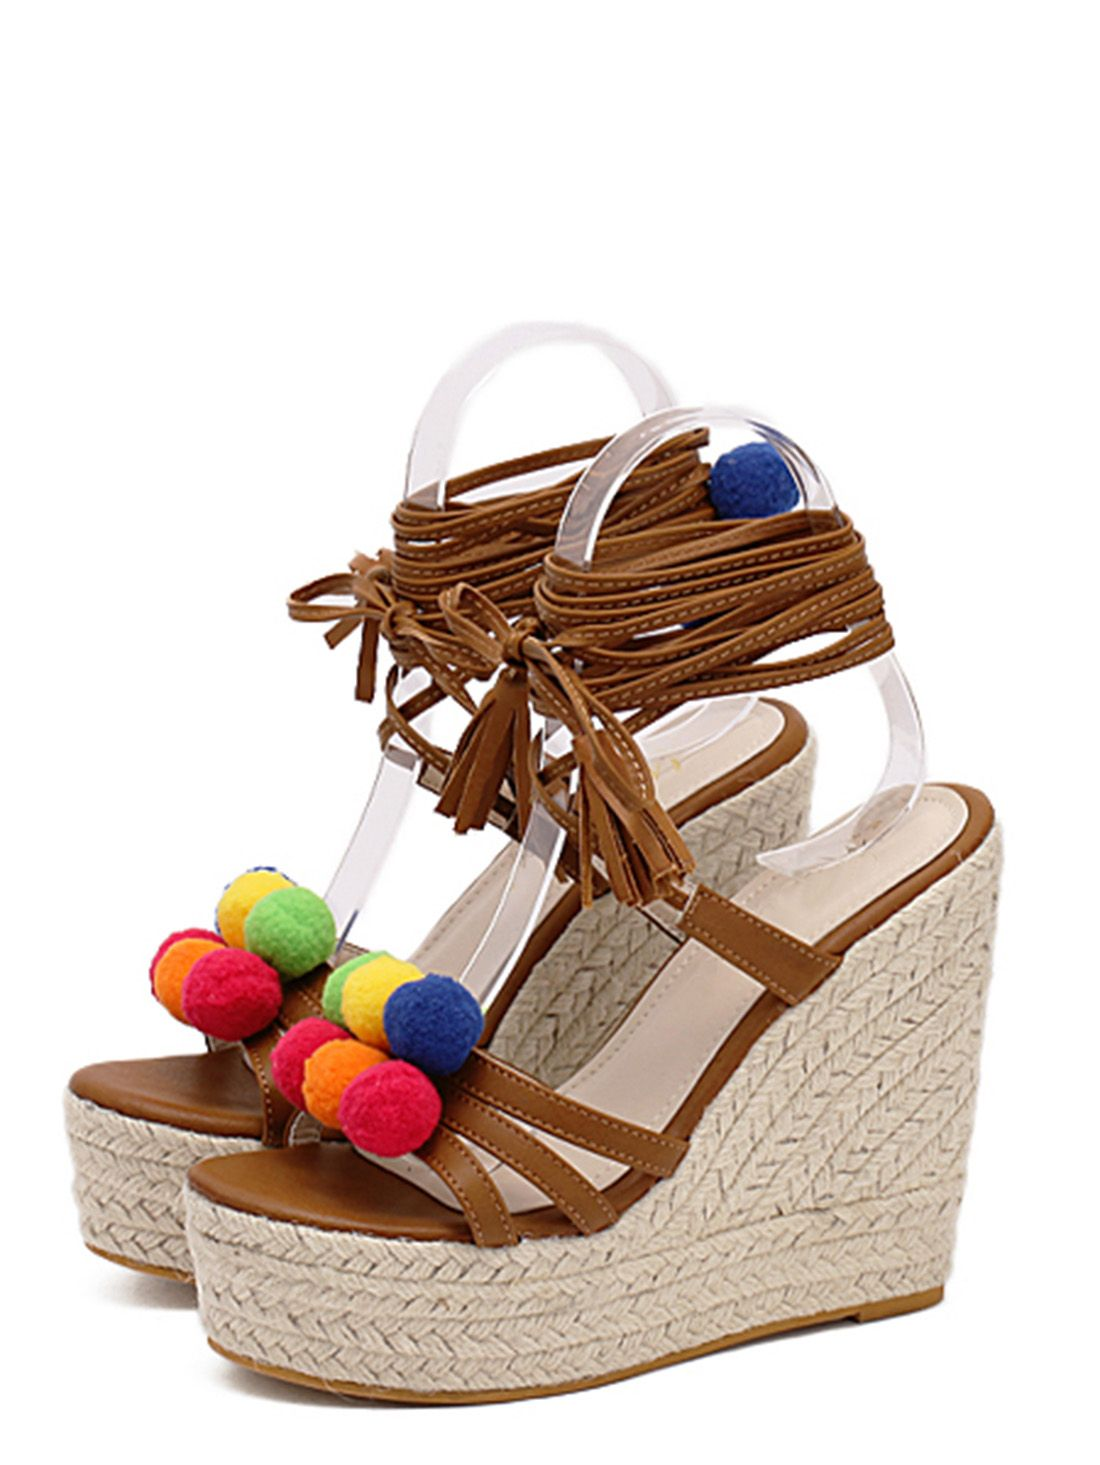 fea651eb7a35a Multicolor Pom-pom Tassel Decorated Wedge Heels. Multicolor Pom-pom Tassel  Decorated Wedge Heels Wedges Online